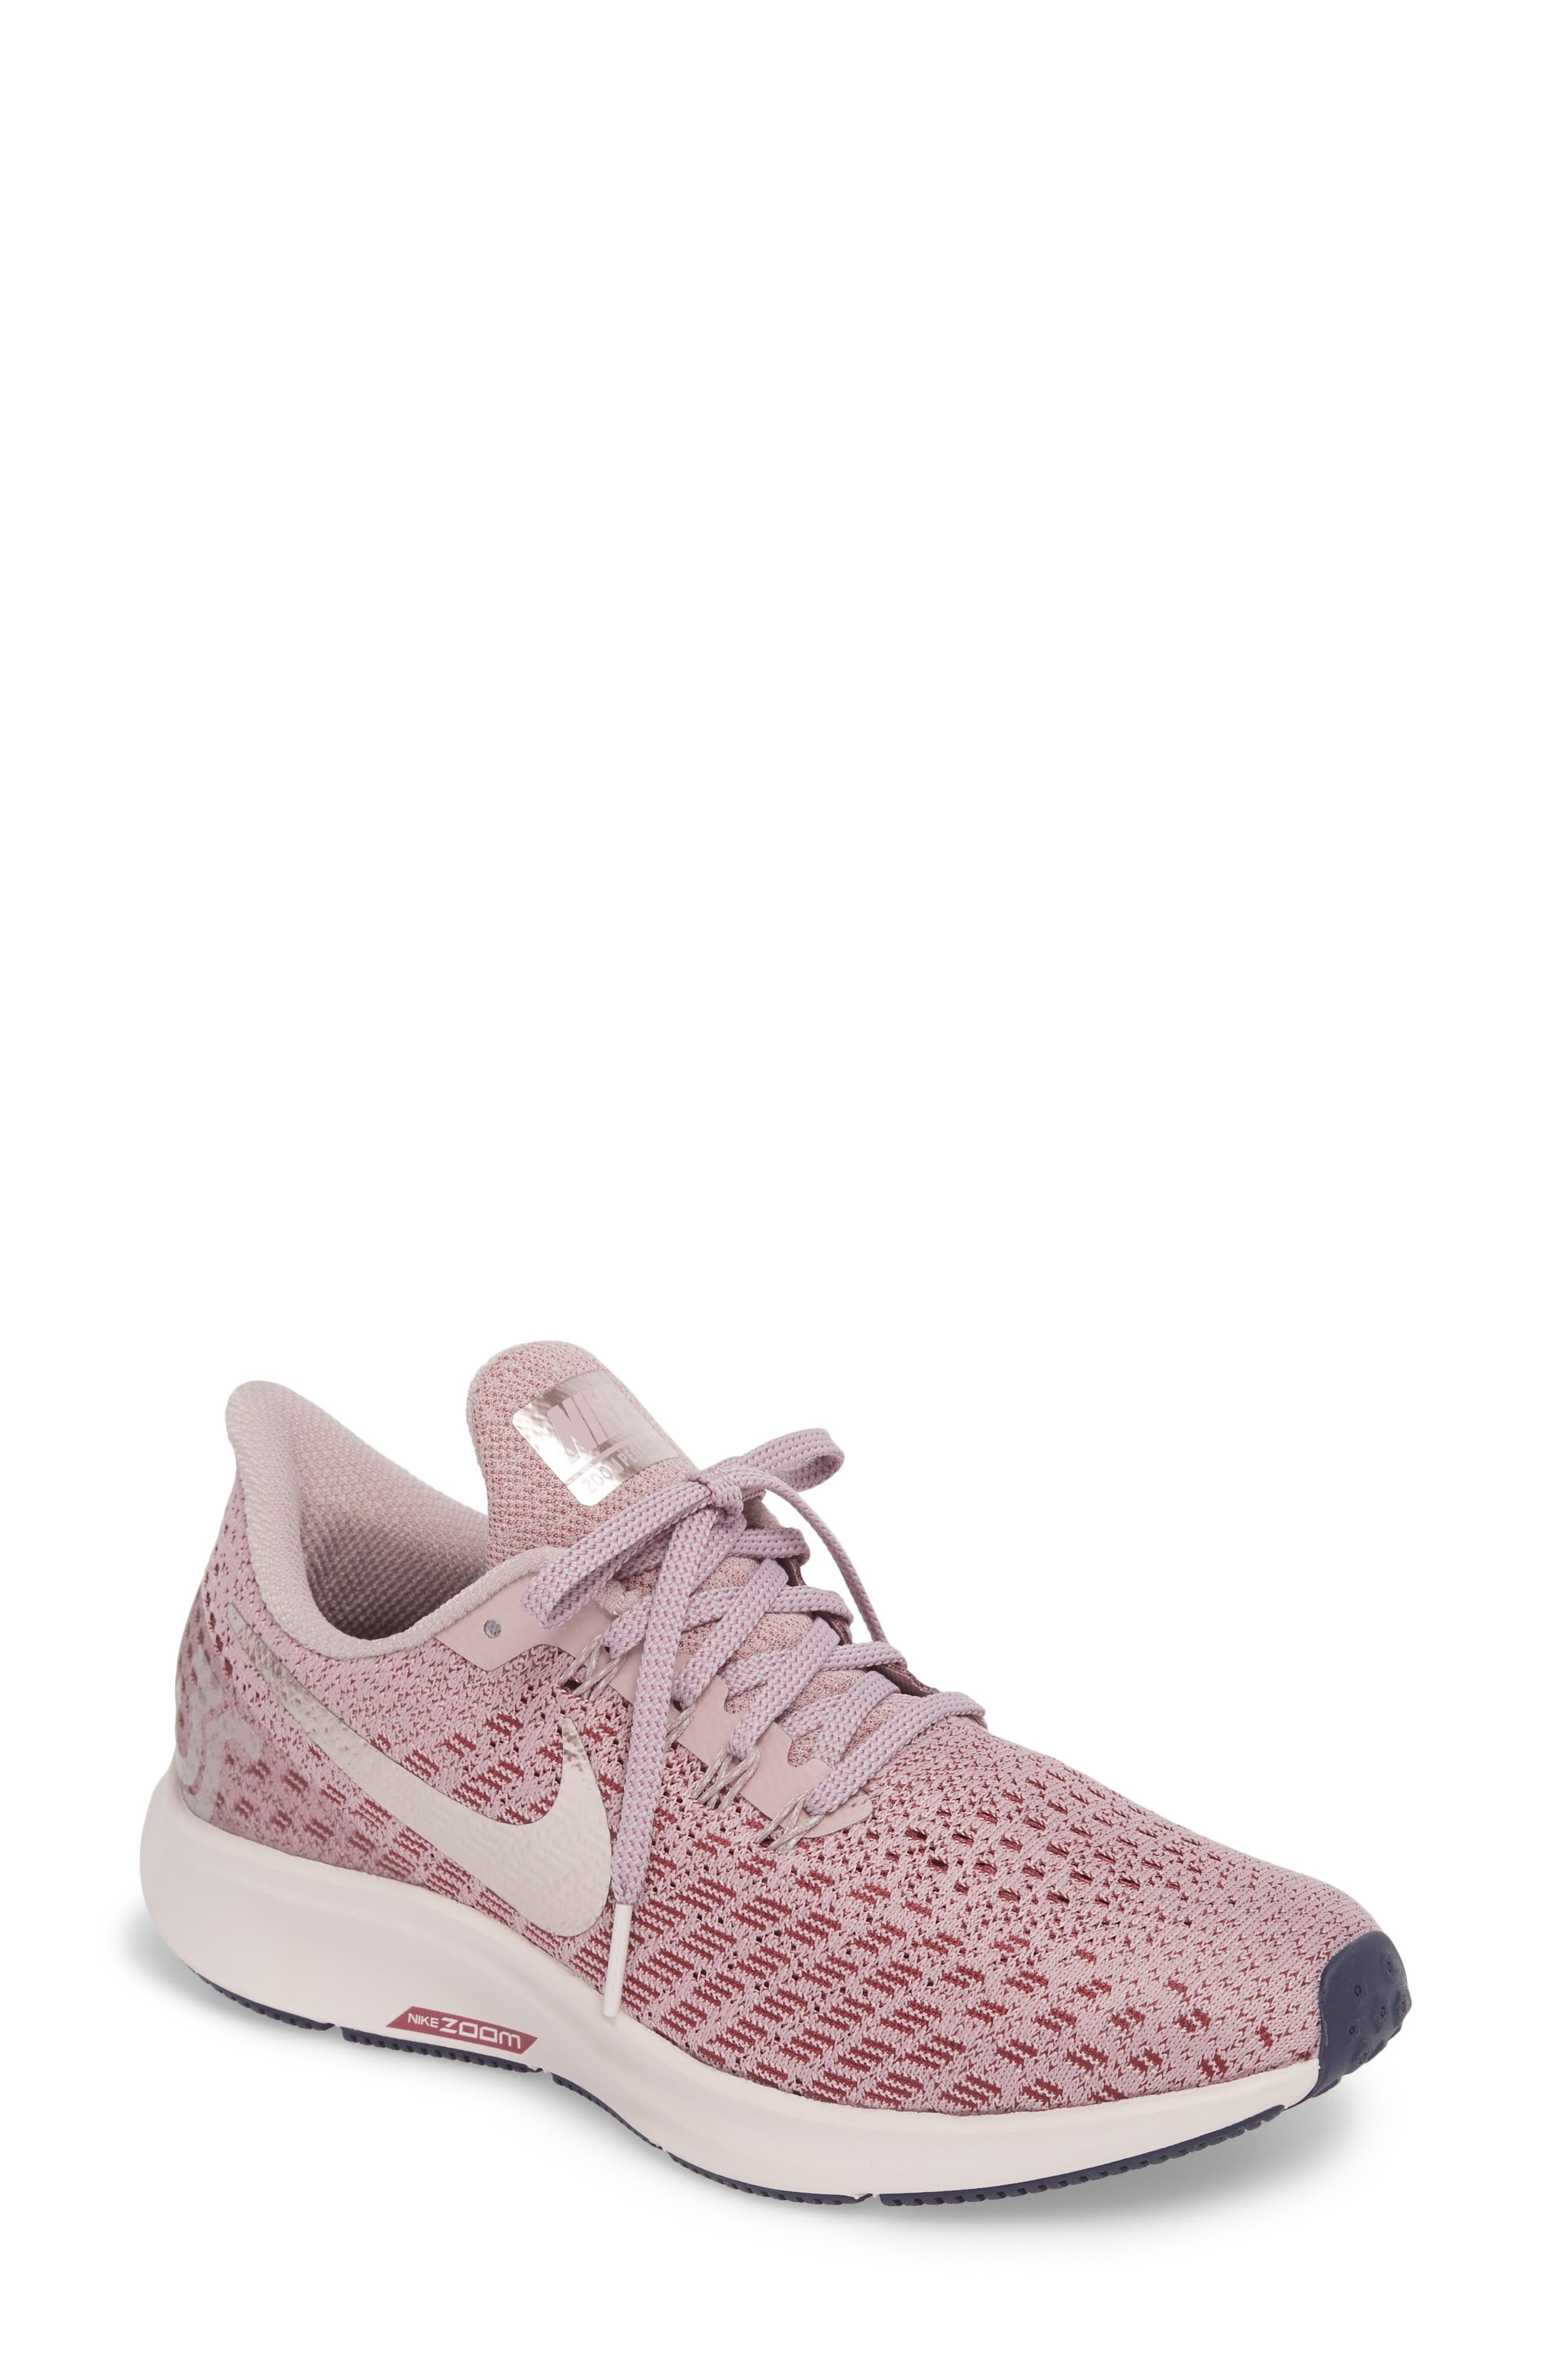 Air Zoom Pegasus 35 Running Shoe,                             Main thumbnail 1, color,                             ELEMENTAL ROSE/ BARELY ROSE